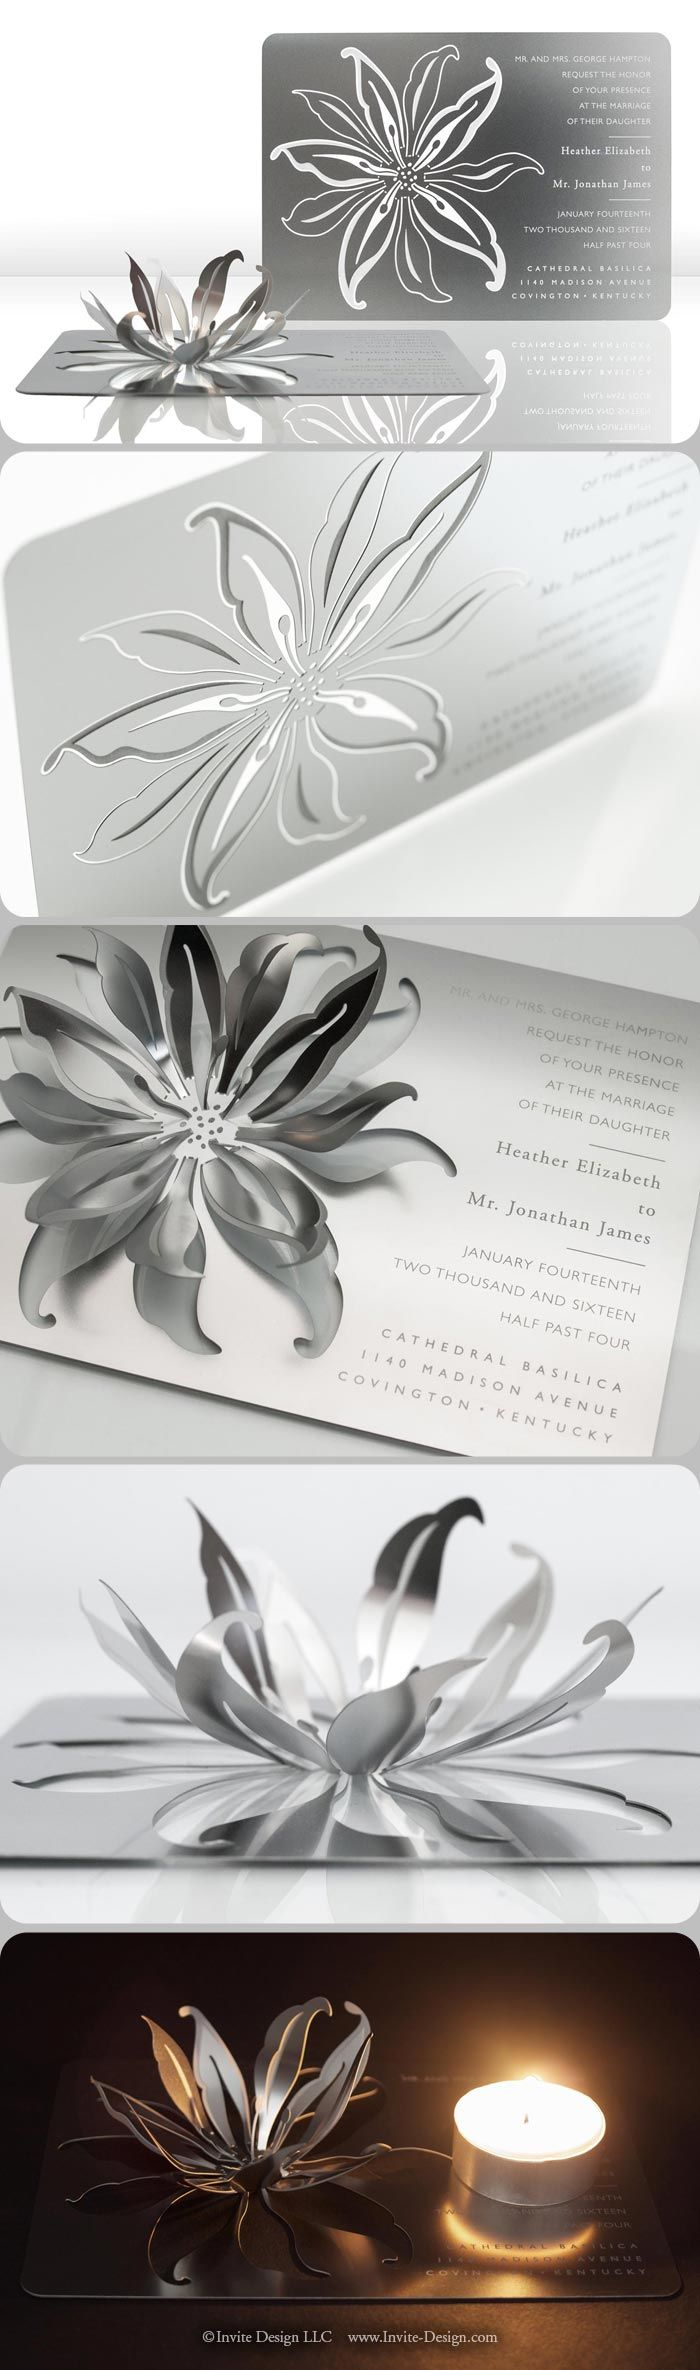 Lily metal wedding invitation mails flat, then transforms into a sculpture or candleholder with a few easy folds of the metal. It's eco-friendly because guests keep it, AND it doubles as a favor. http://www.invite-design.com/#!product/prd12/2202319295/lily-invitation